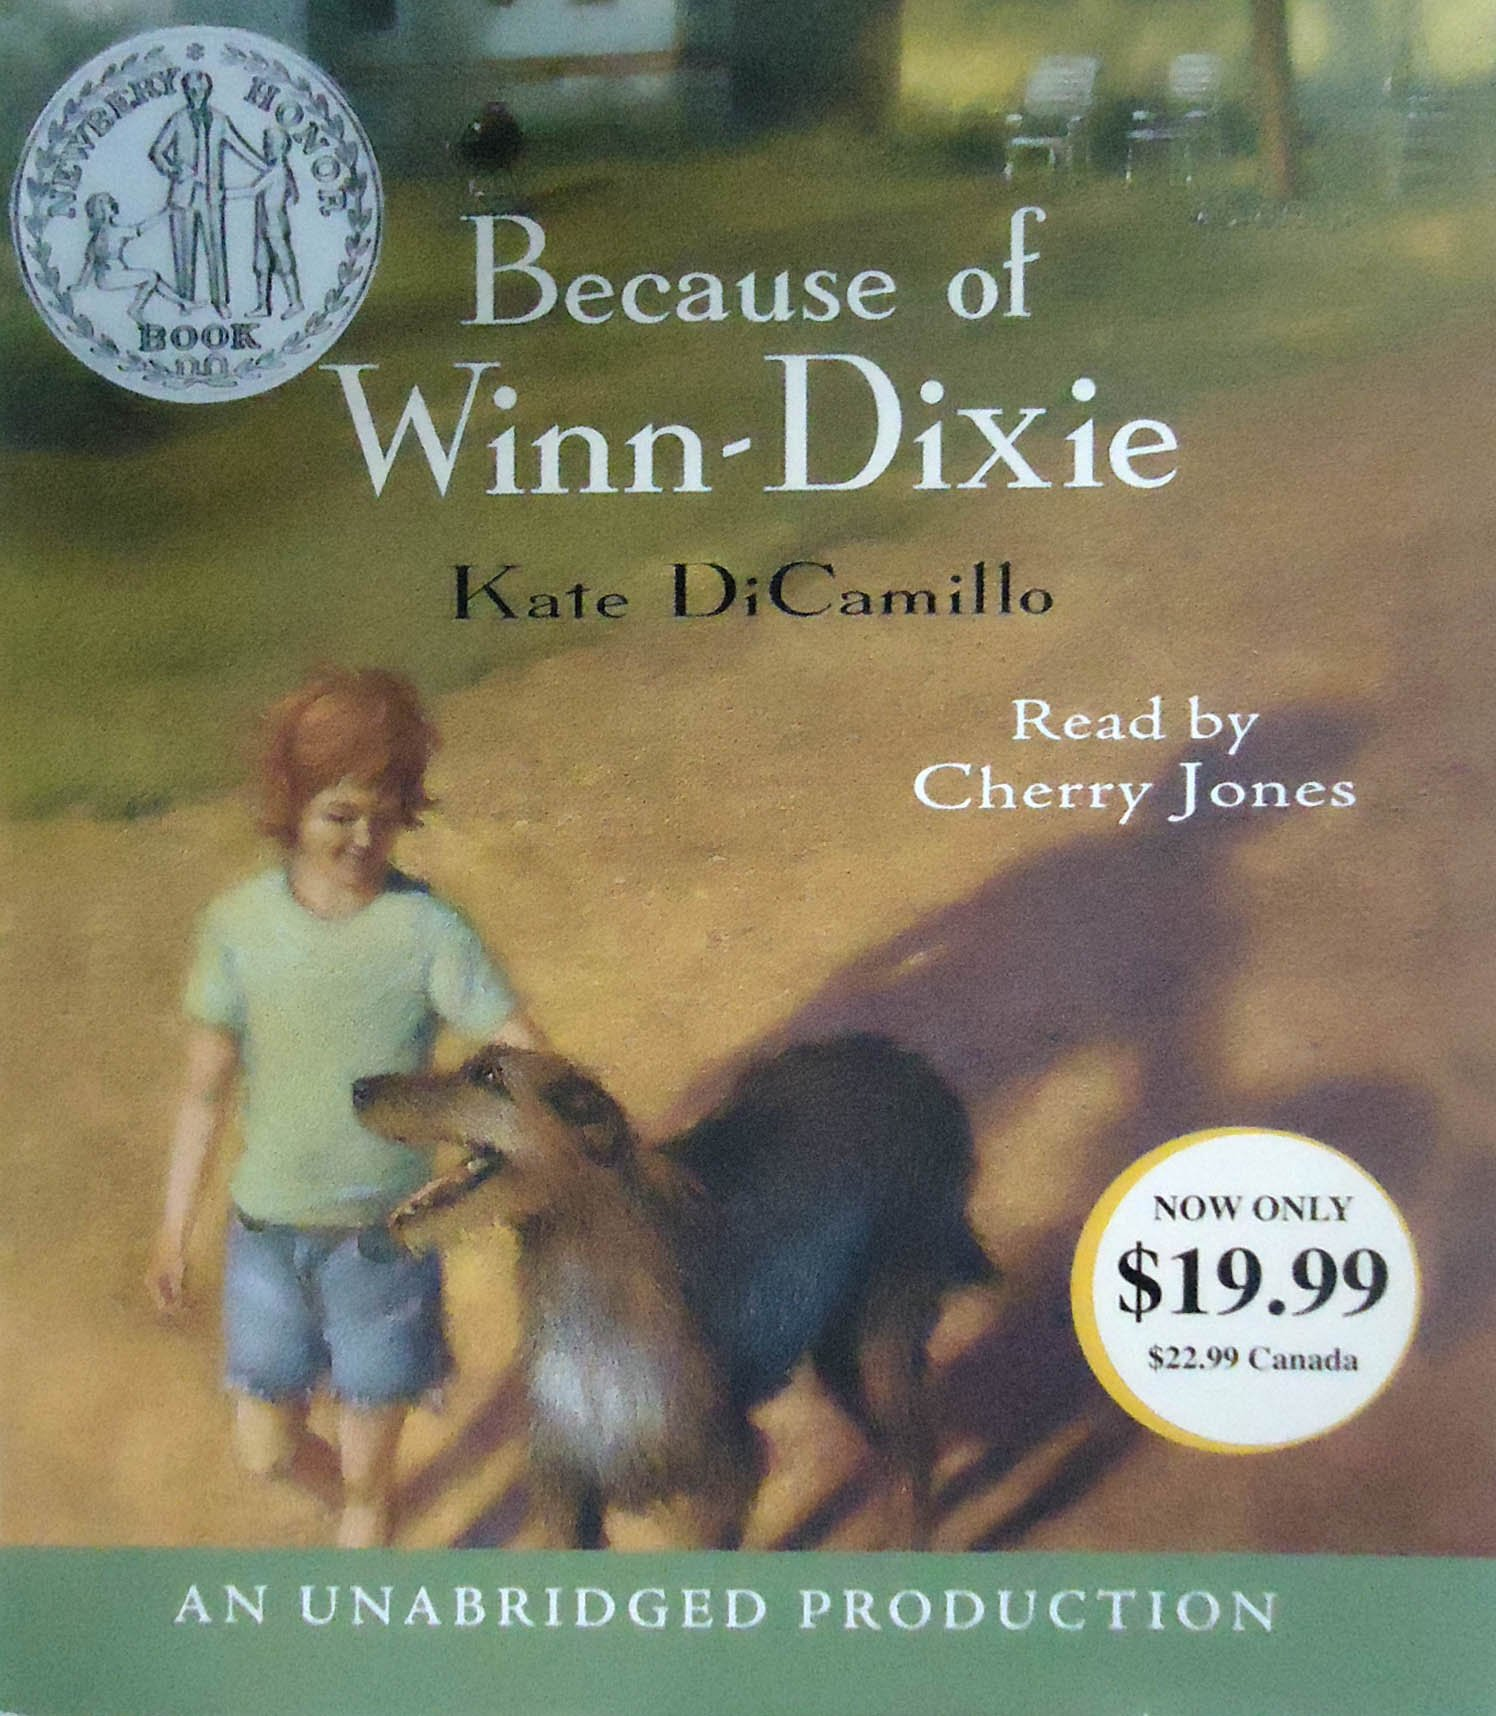 Review of winn dixie free appliances - Because Of Winn Dixie Kate Dicamillo Cherry Jones 9781400091492 Amazon Com Books